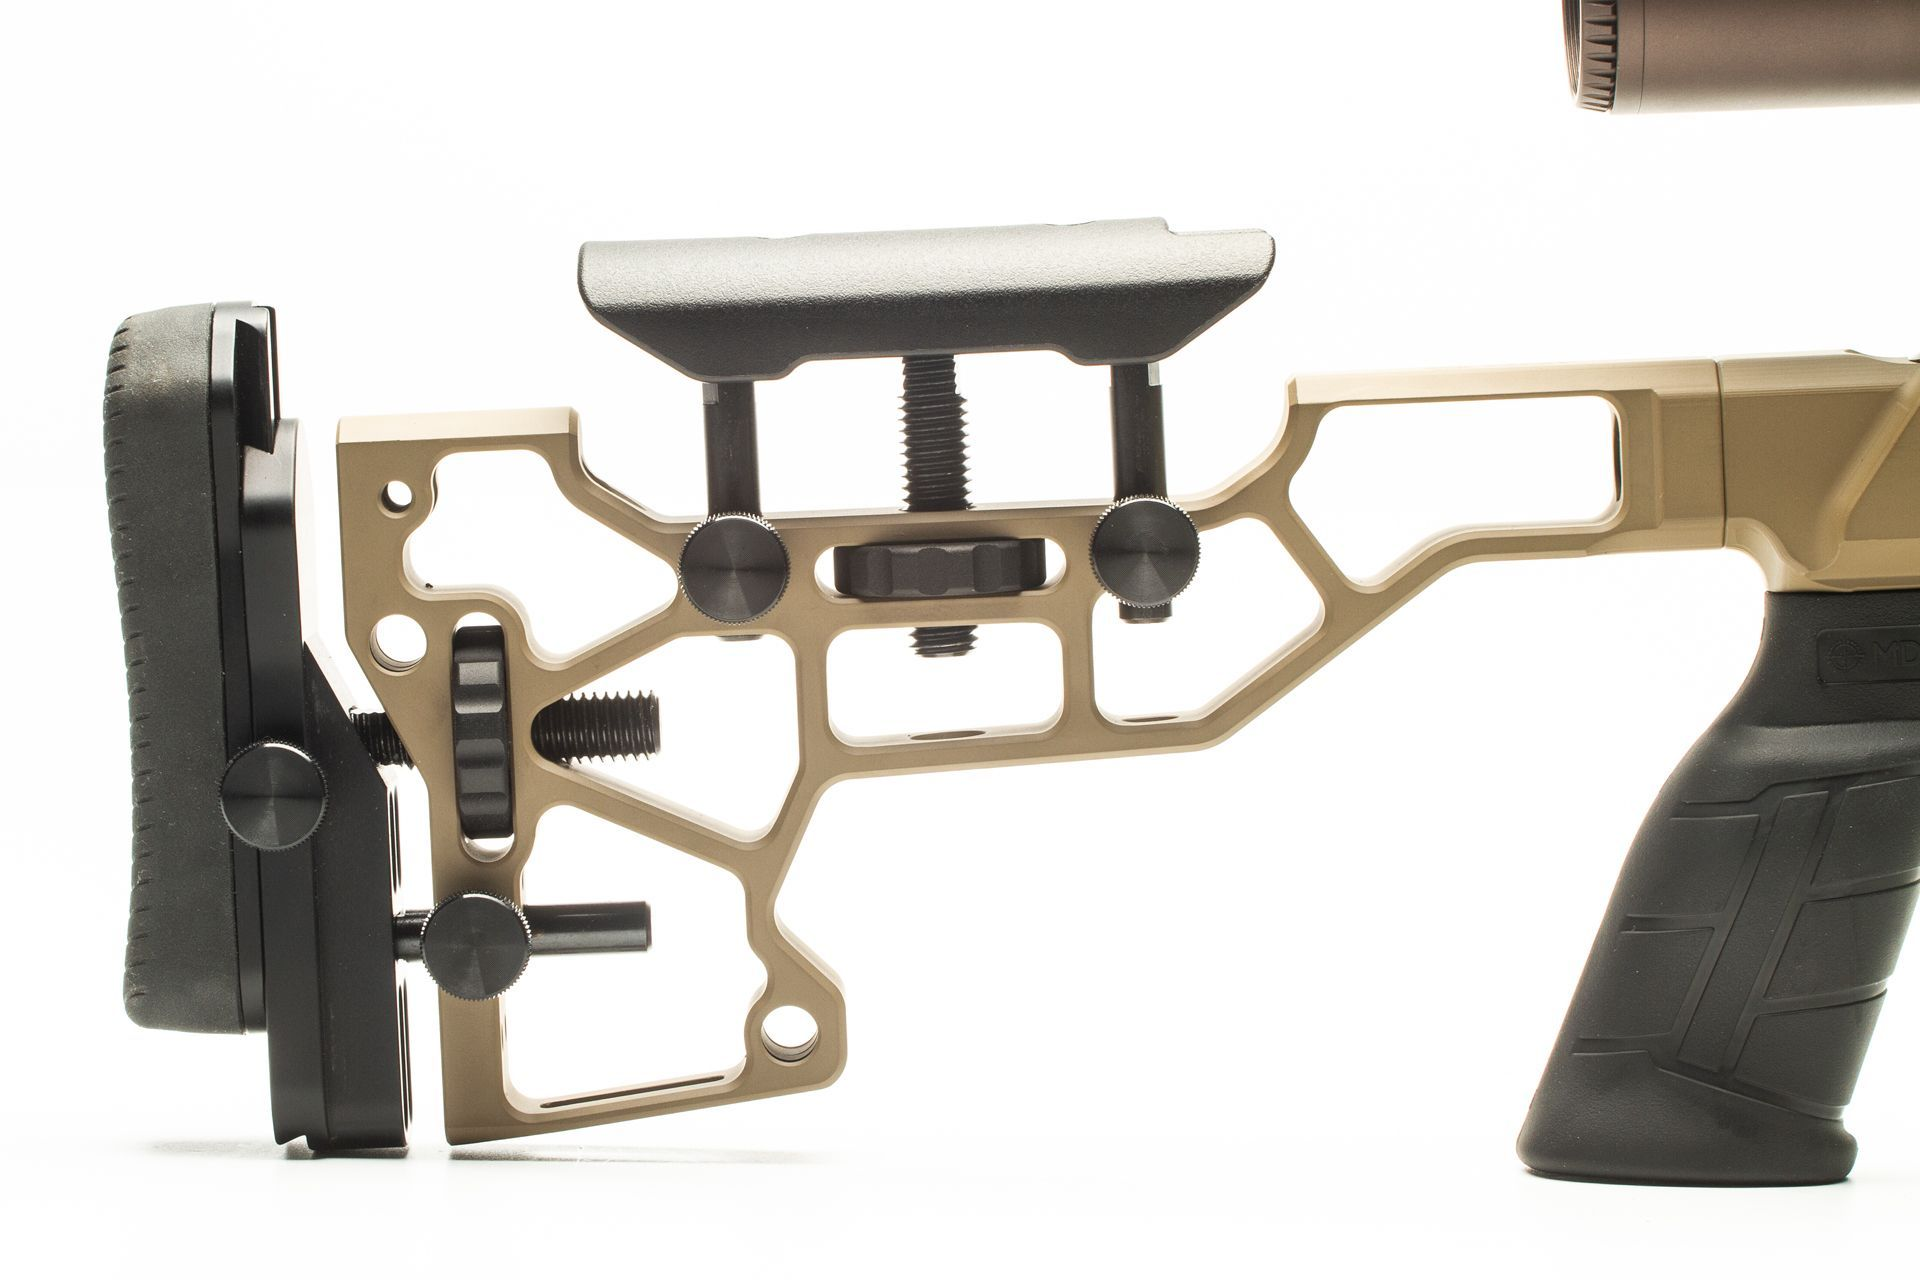 MDT ESS V2 Rifle Chassis System - Australian Tactical Precision